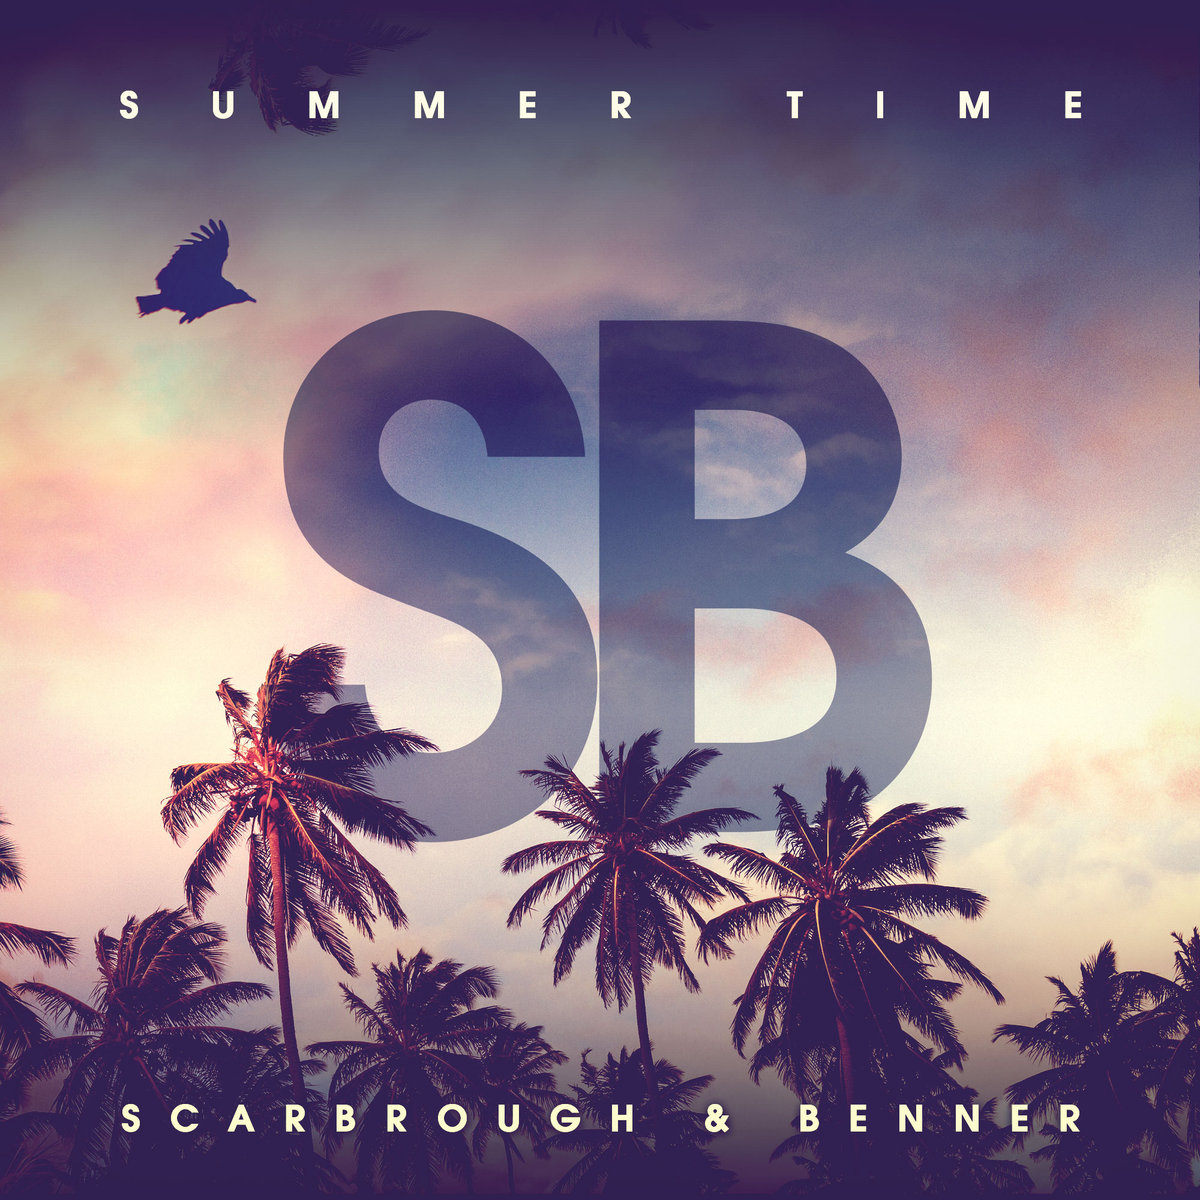 Scarbrough & Benner - Time To Fly @ 'Summertime' album (little dragon, thievery corporation)